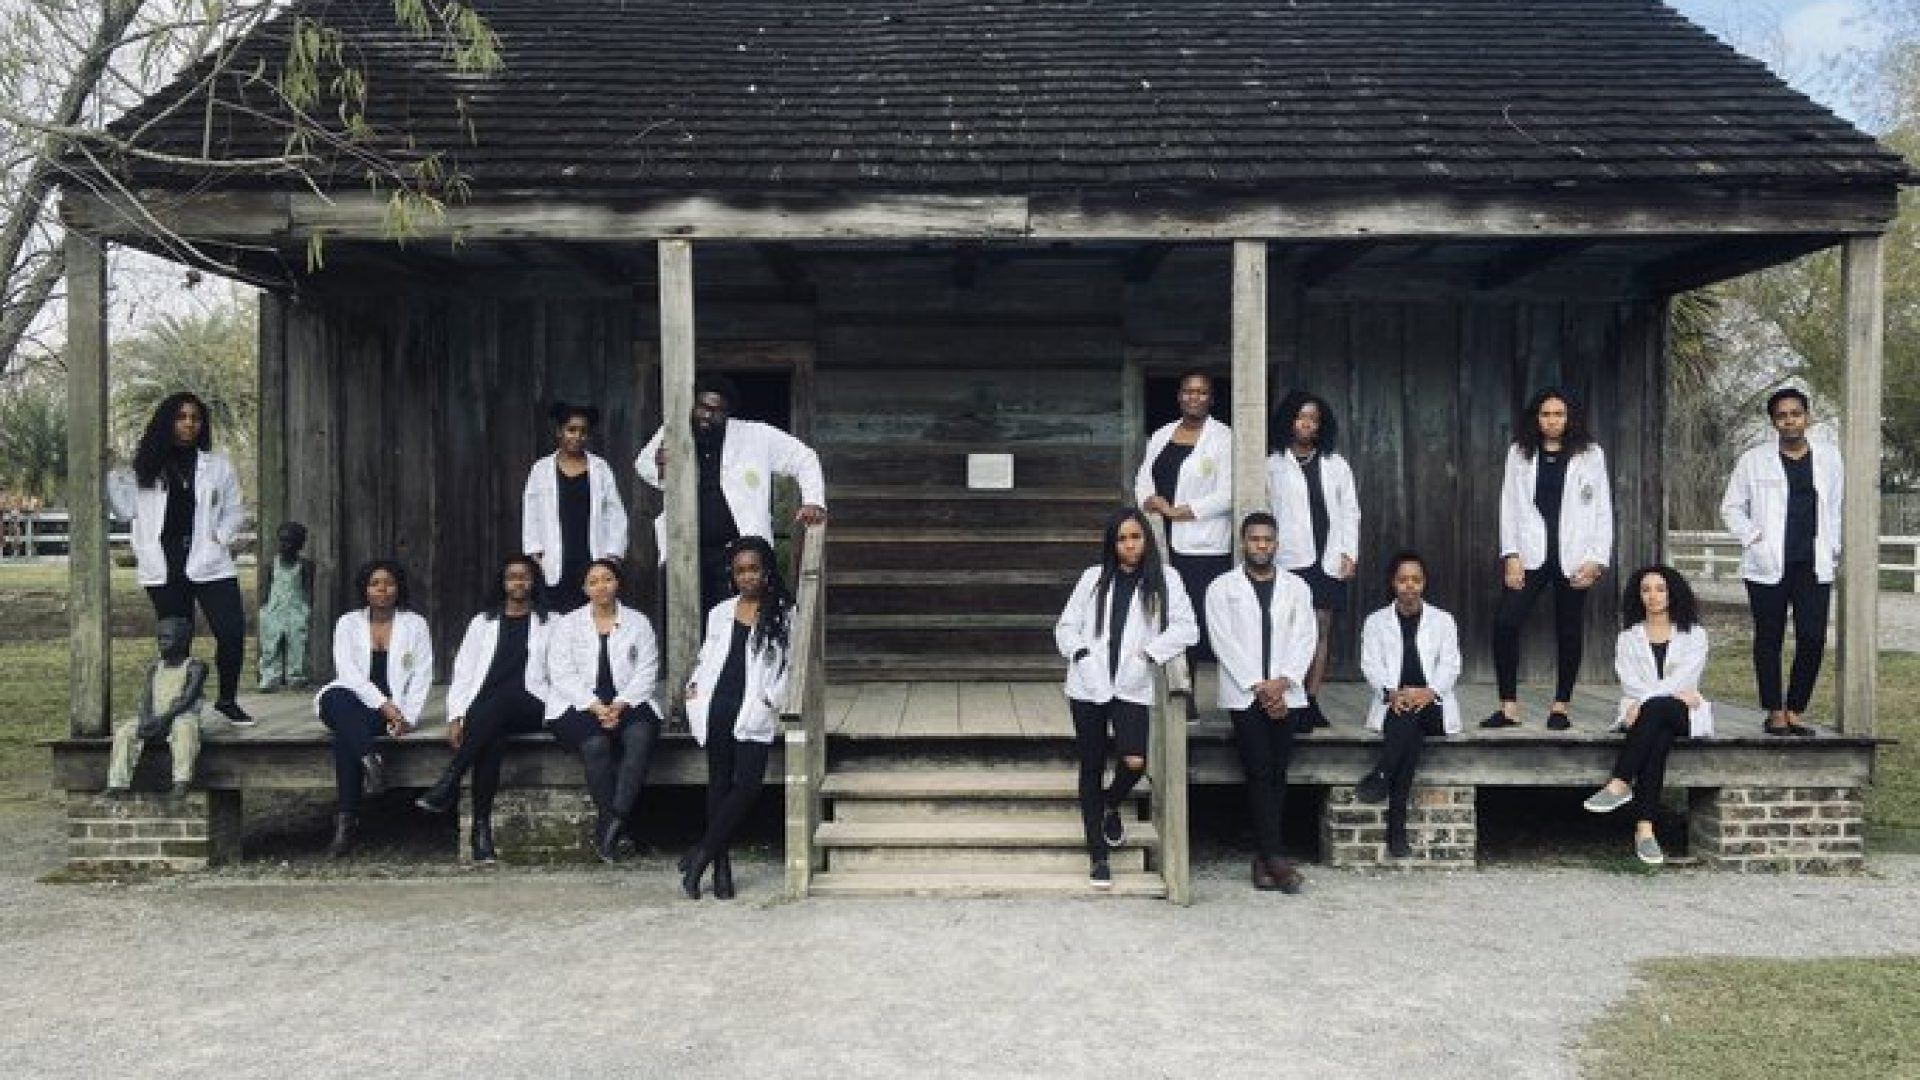 #BlackExcellence: Viral Photo Shows Black Medical Students Posed In Front Of Former Slave Quarters